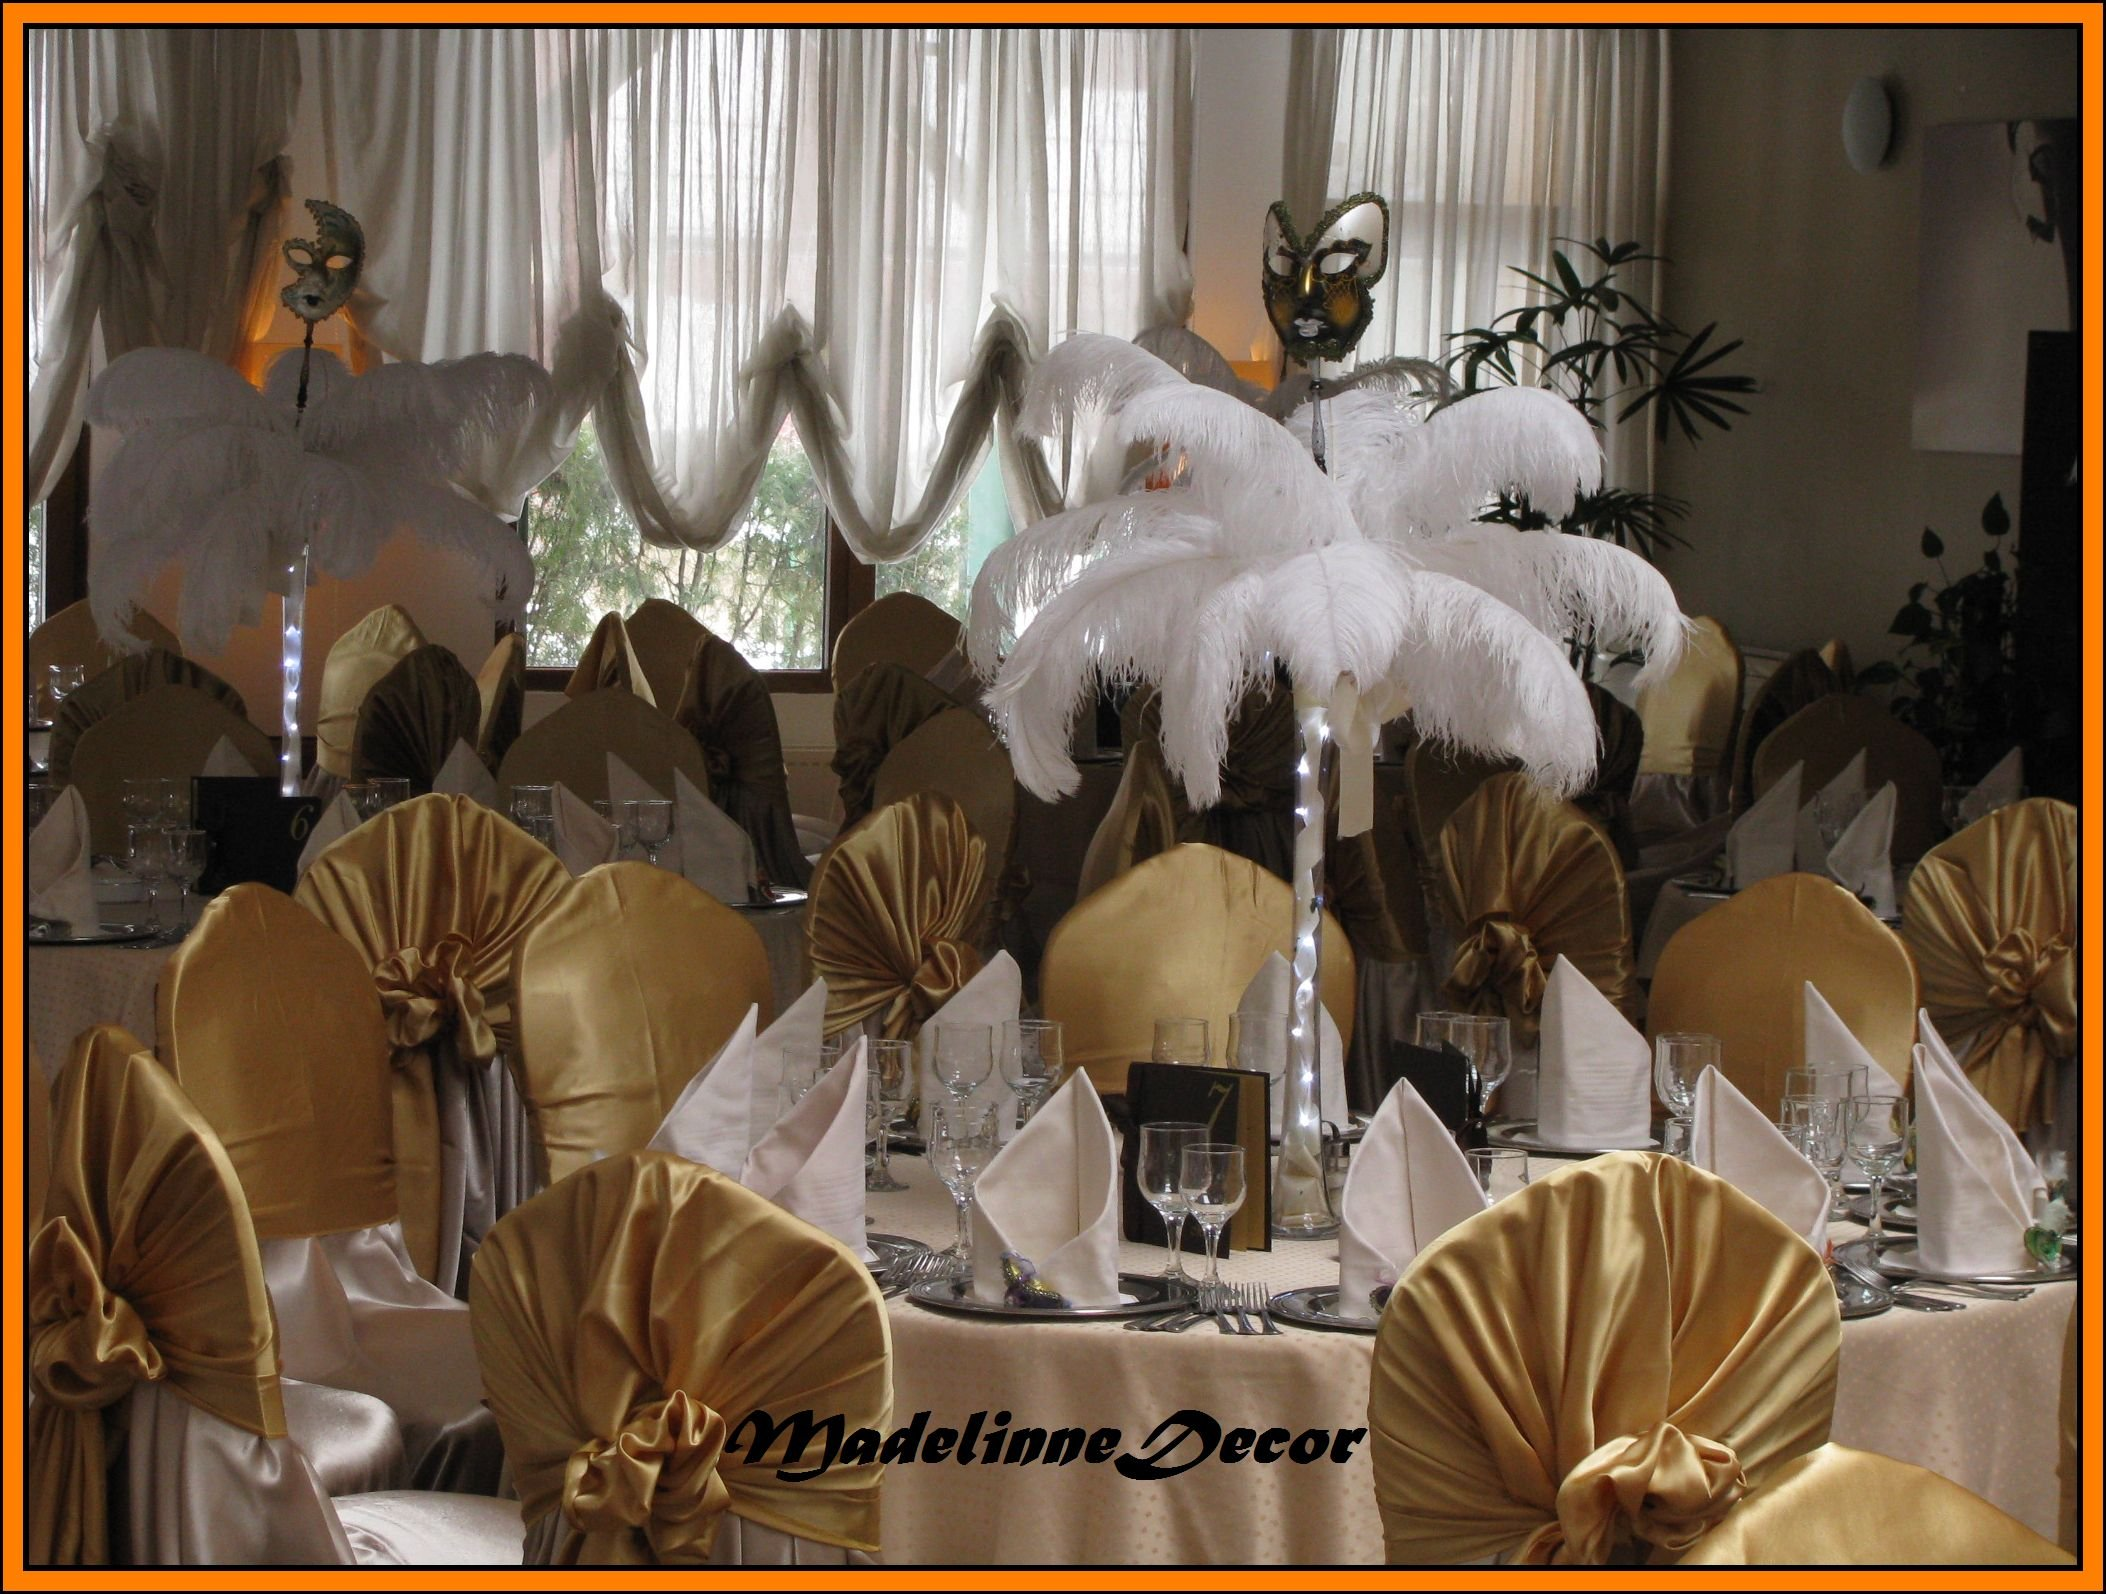 Nunta Venetiana - Venetian Wedding Theme